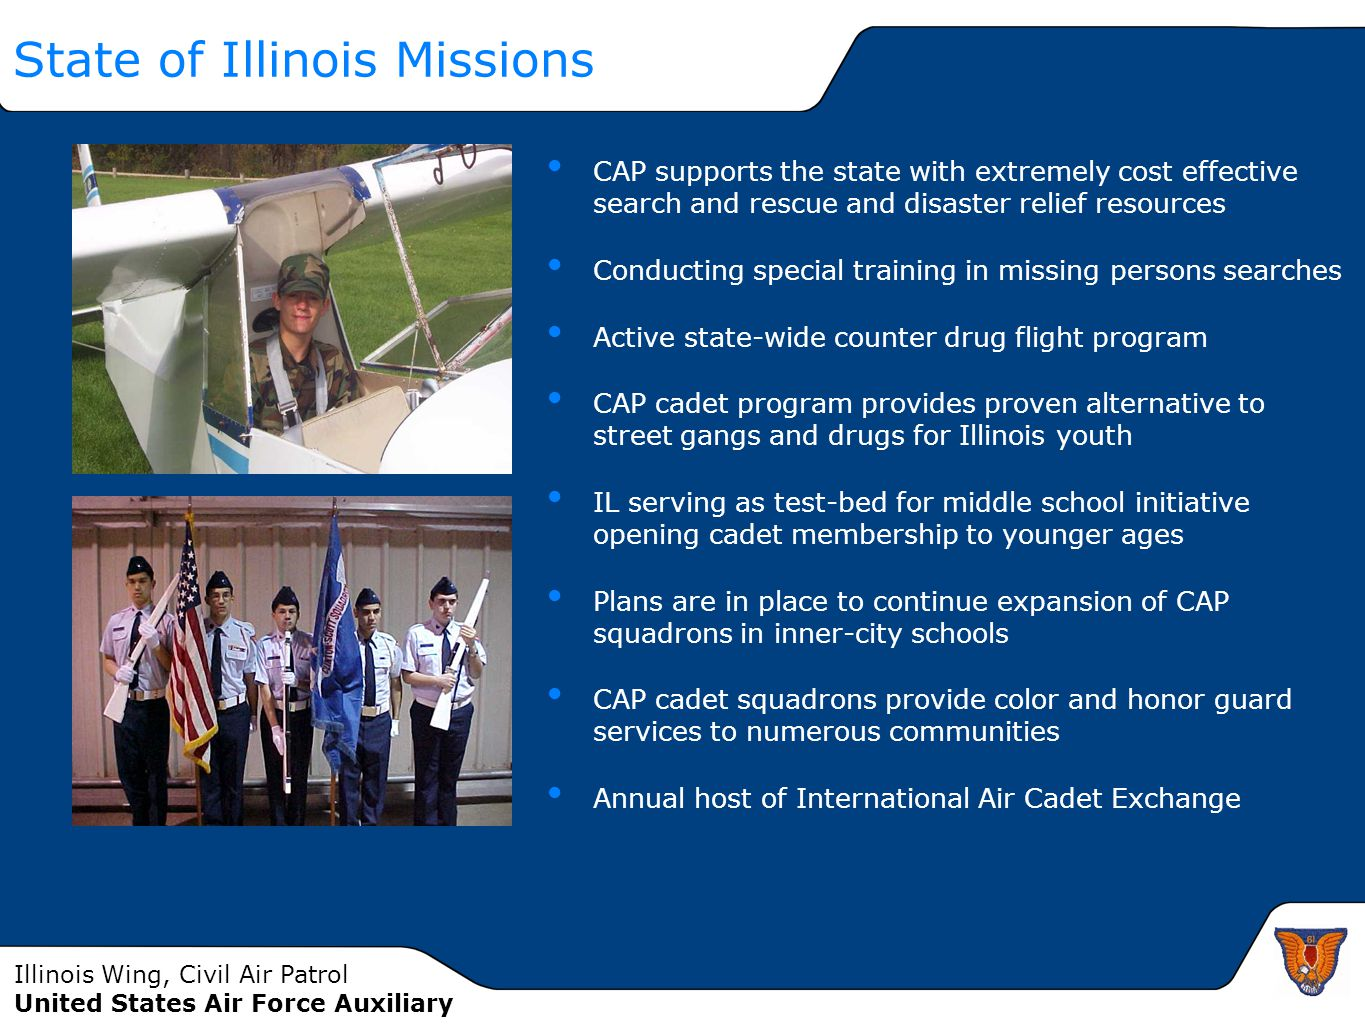 State of Illinois Missions